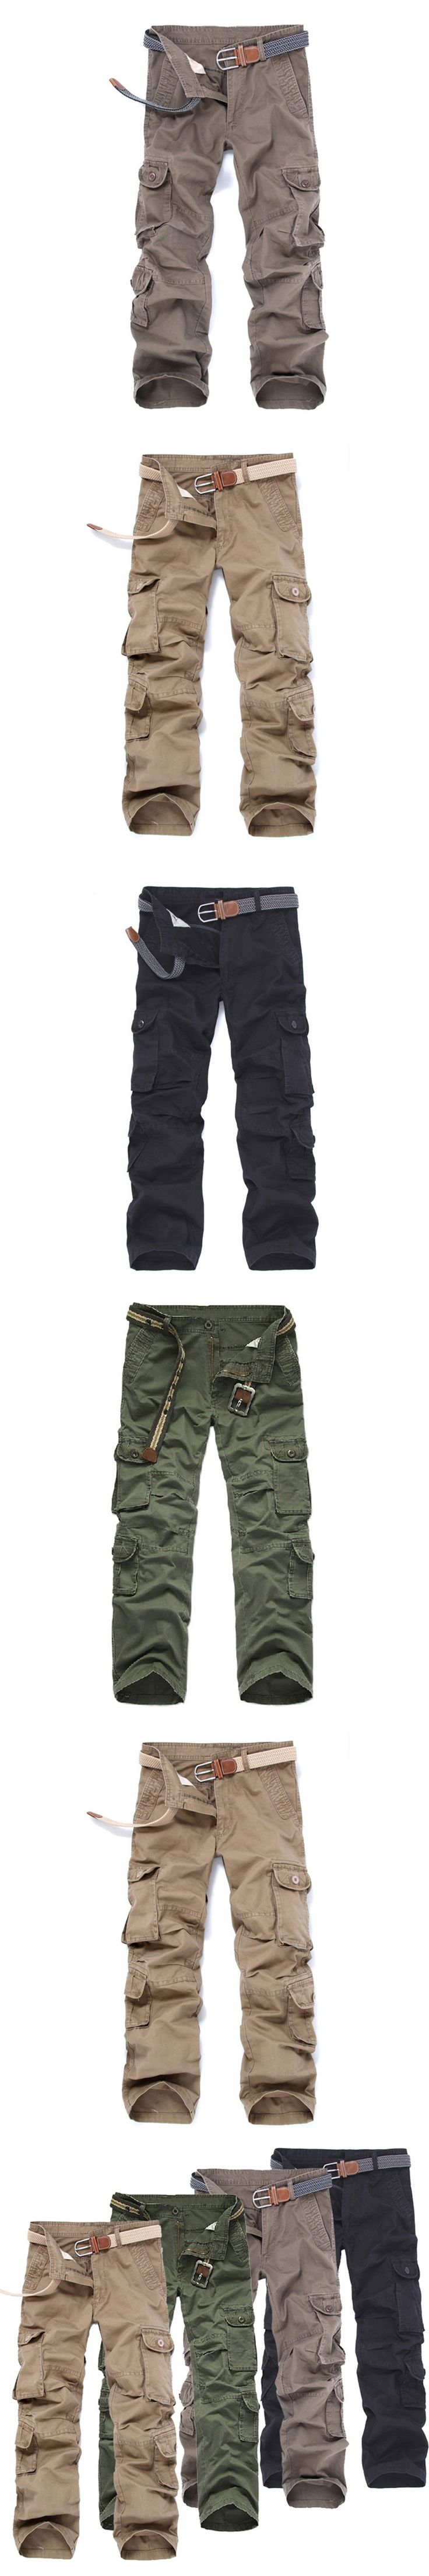 COCKCON Brand Military Army Camouflage Cargo Pants Plus Size Multi-pocket Overalls Trousers Straight Trousers Plus Size